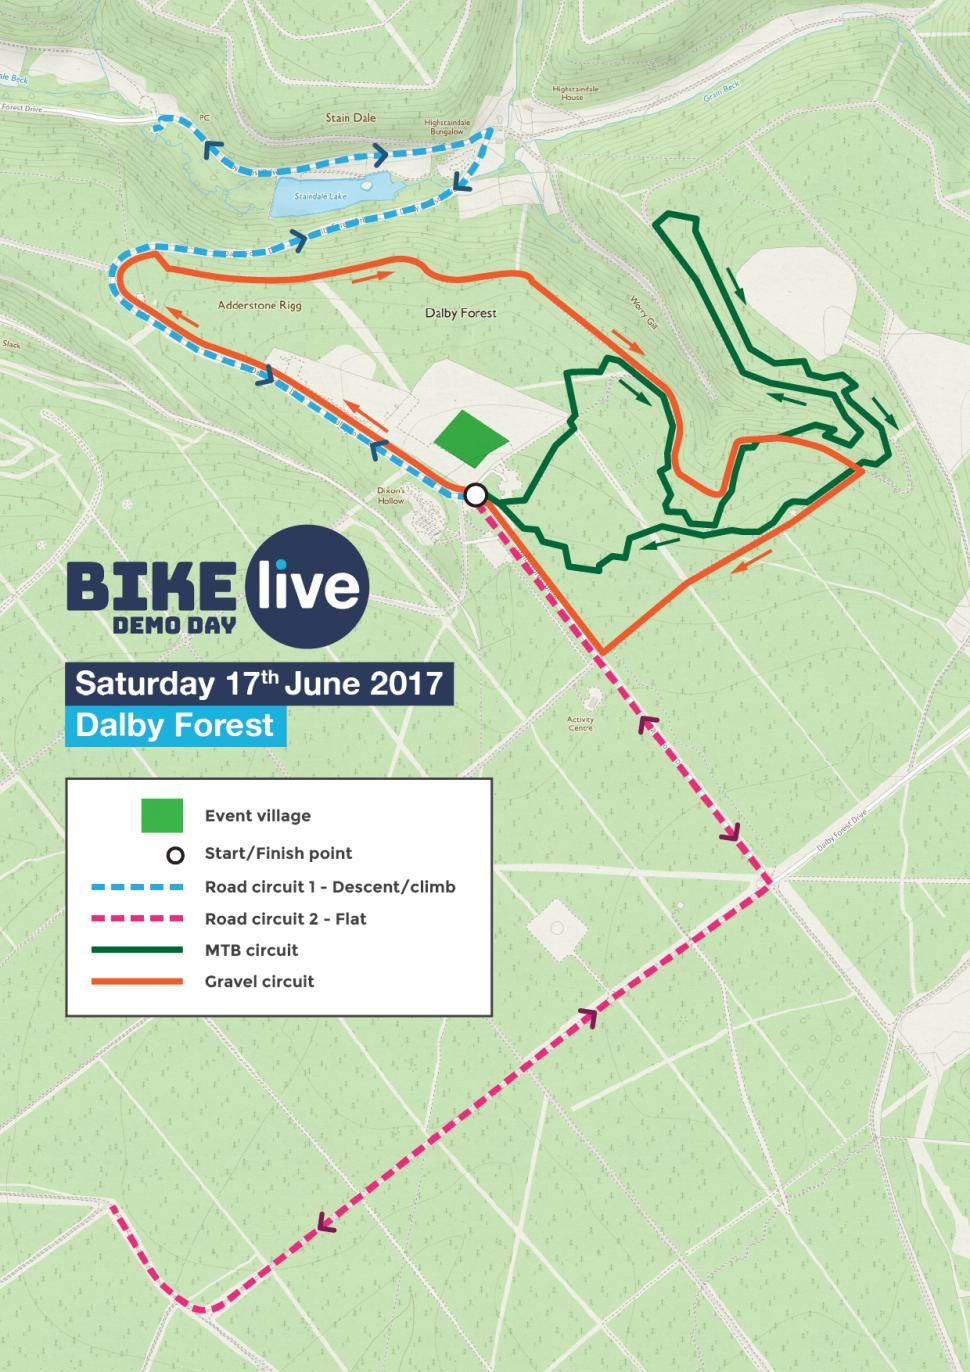 Bike Live Dalby Forest Check Out The Road Gravel Mountain Police Lights Circuit Electronic Circuits Pinterest Bikelivedalby Coursemaps 01